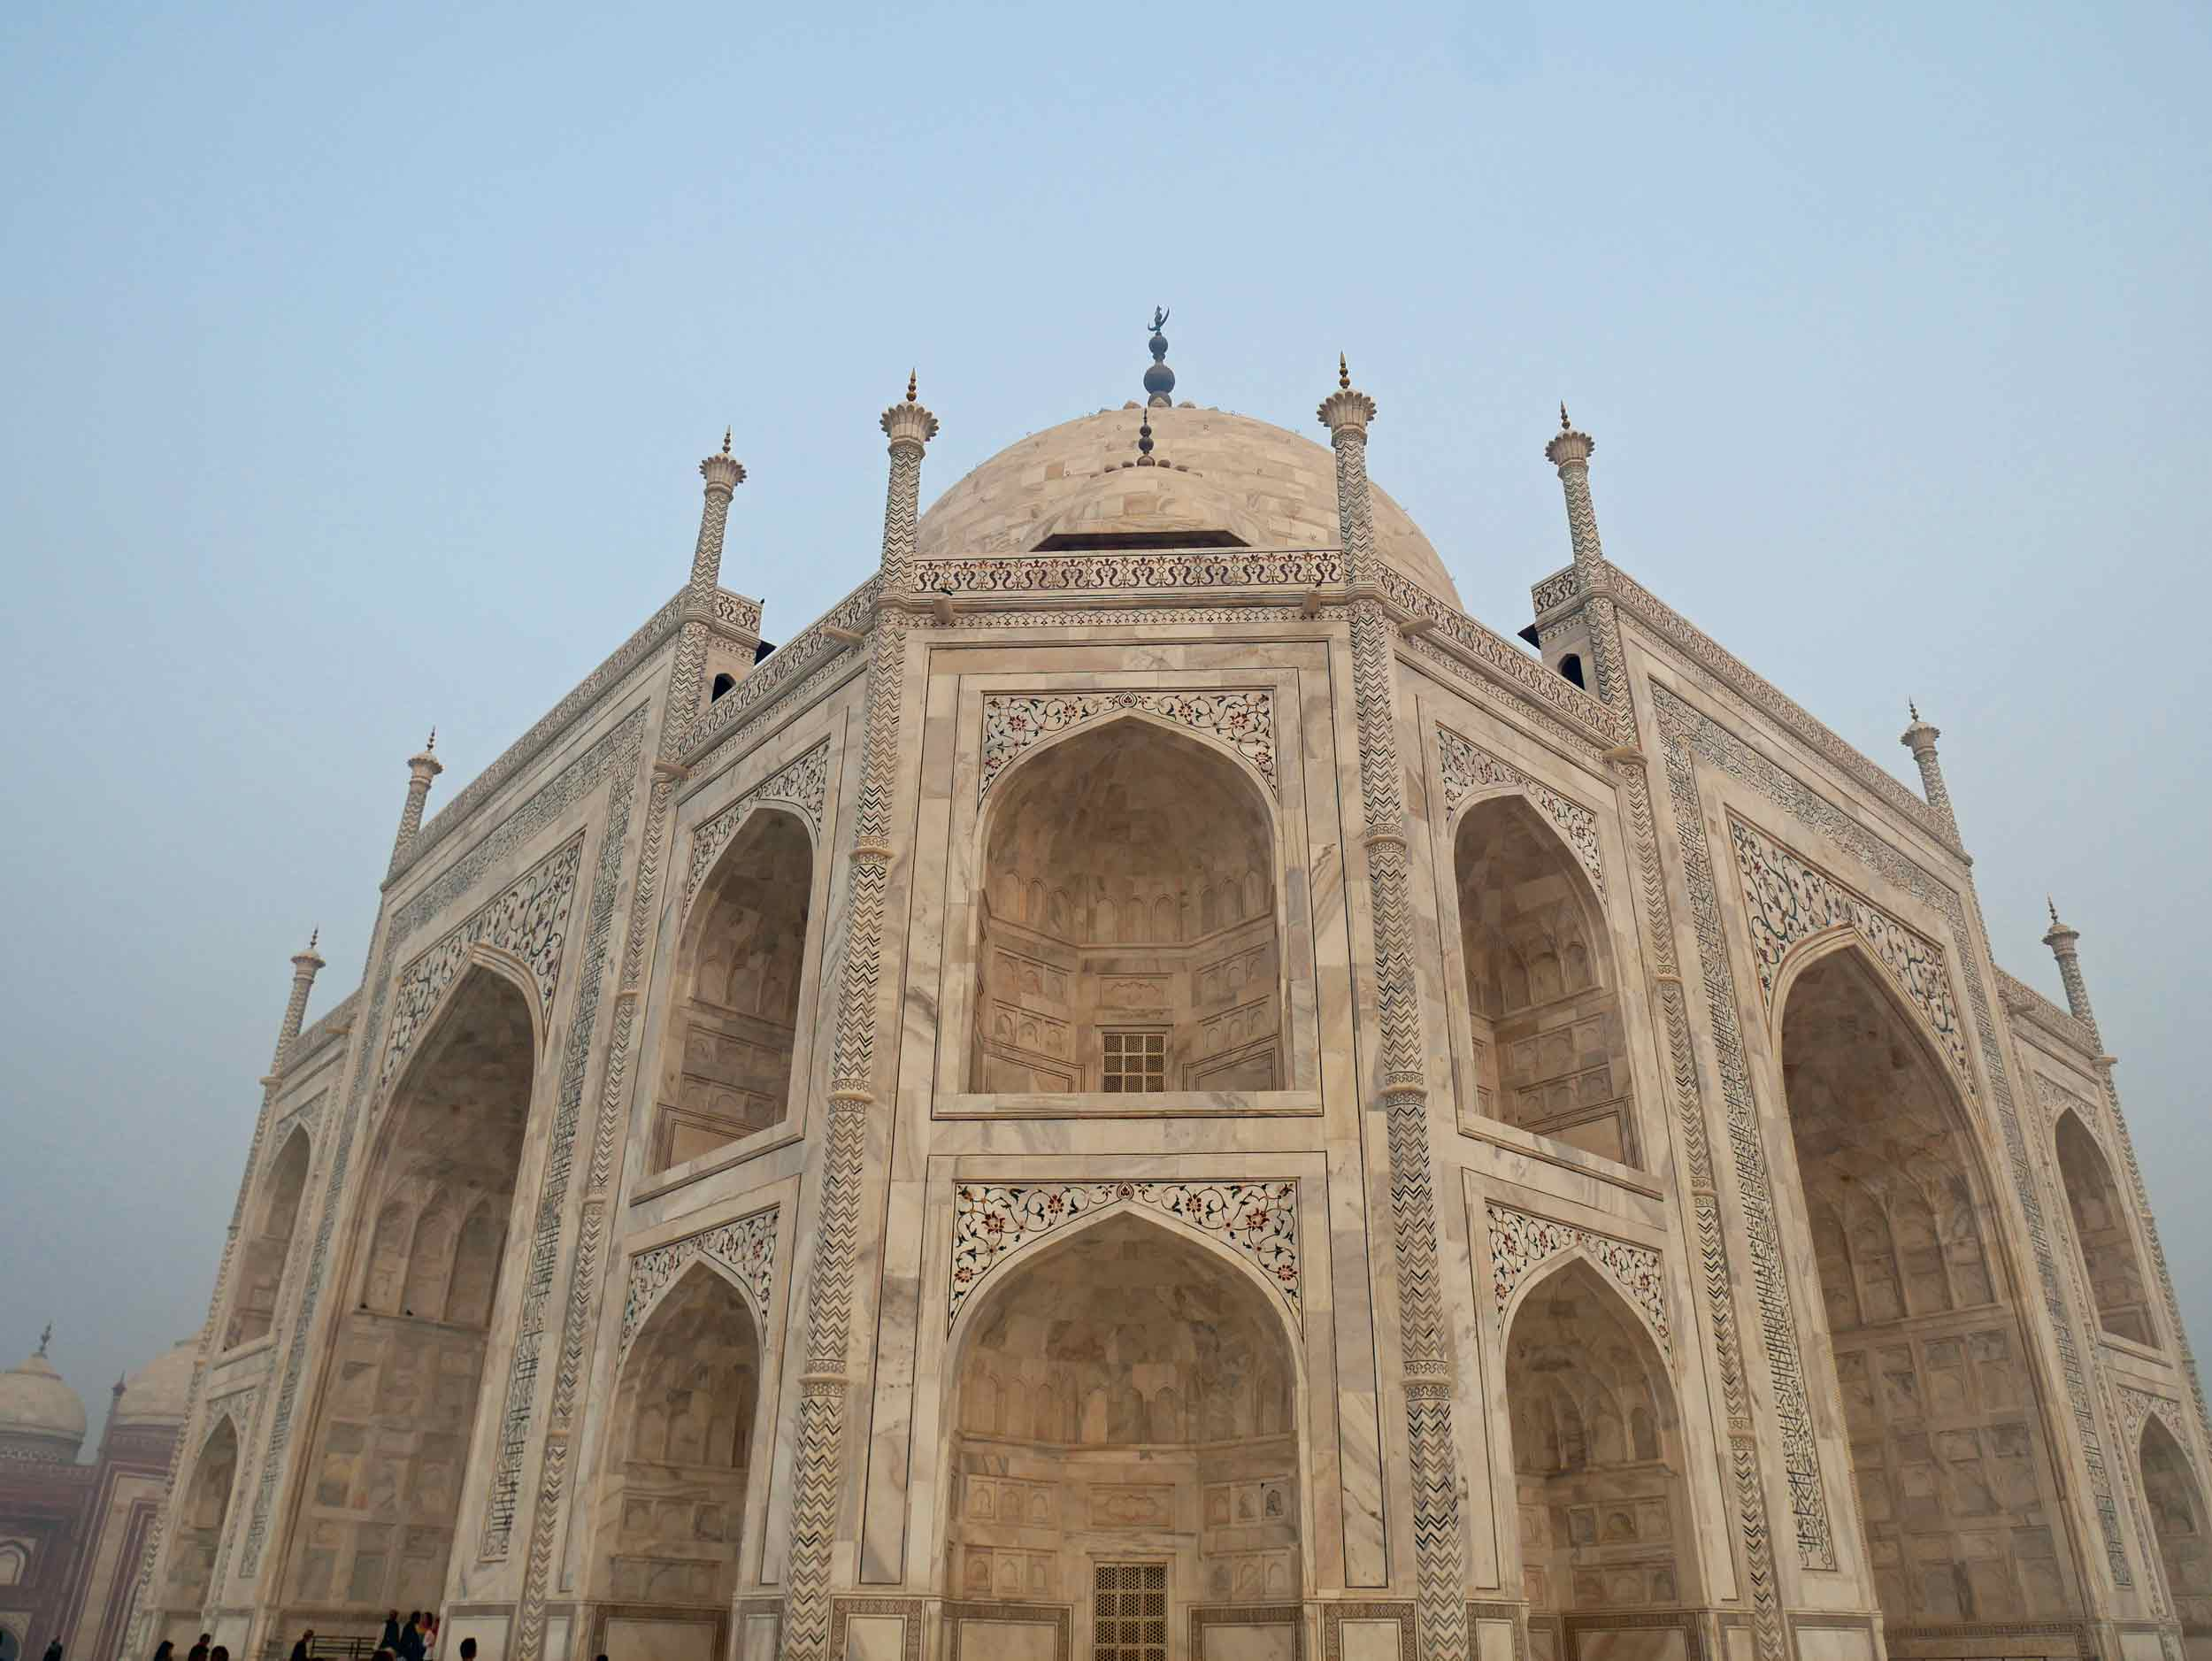 """The Taj Mahal was designated a UNESCO World Heritage Site in 1983 for being """"the jewel of Muslim art in India and one of the universally admired masterpieces of the world's heritage""""."""